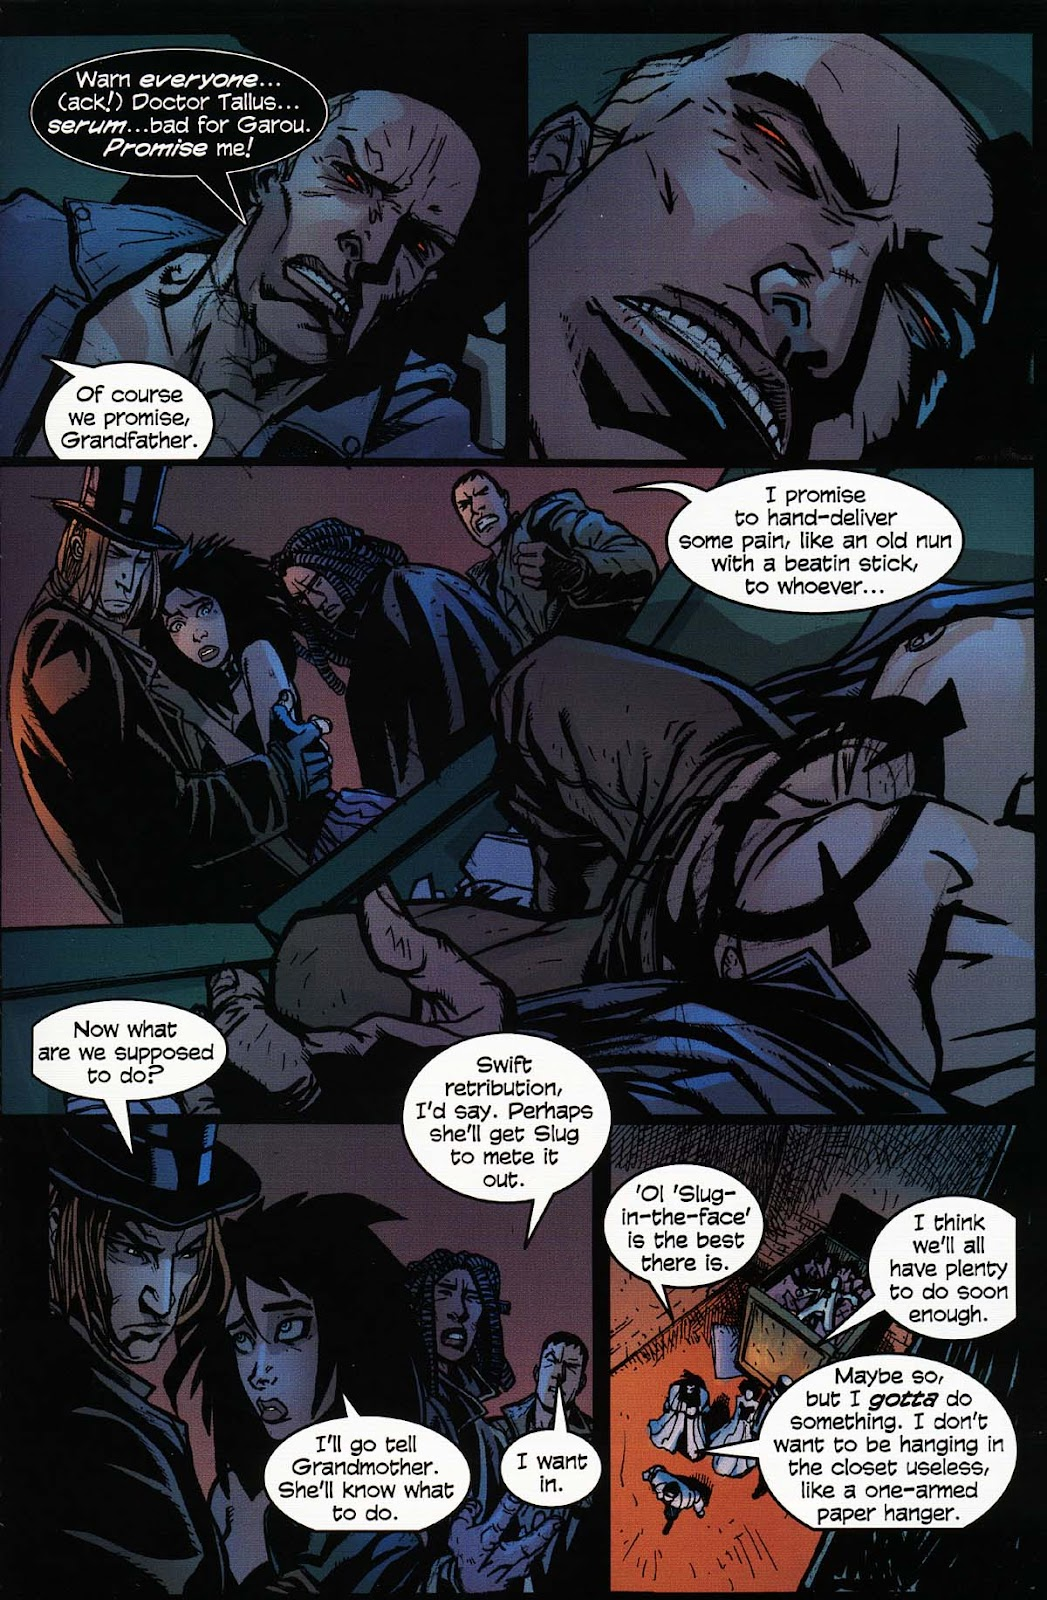 Read online Werewolf the Apocalypse comic -  Issue # Bone Gnawers - 13